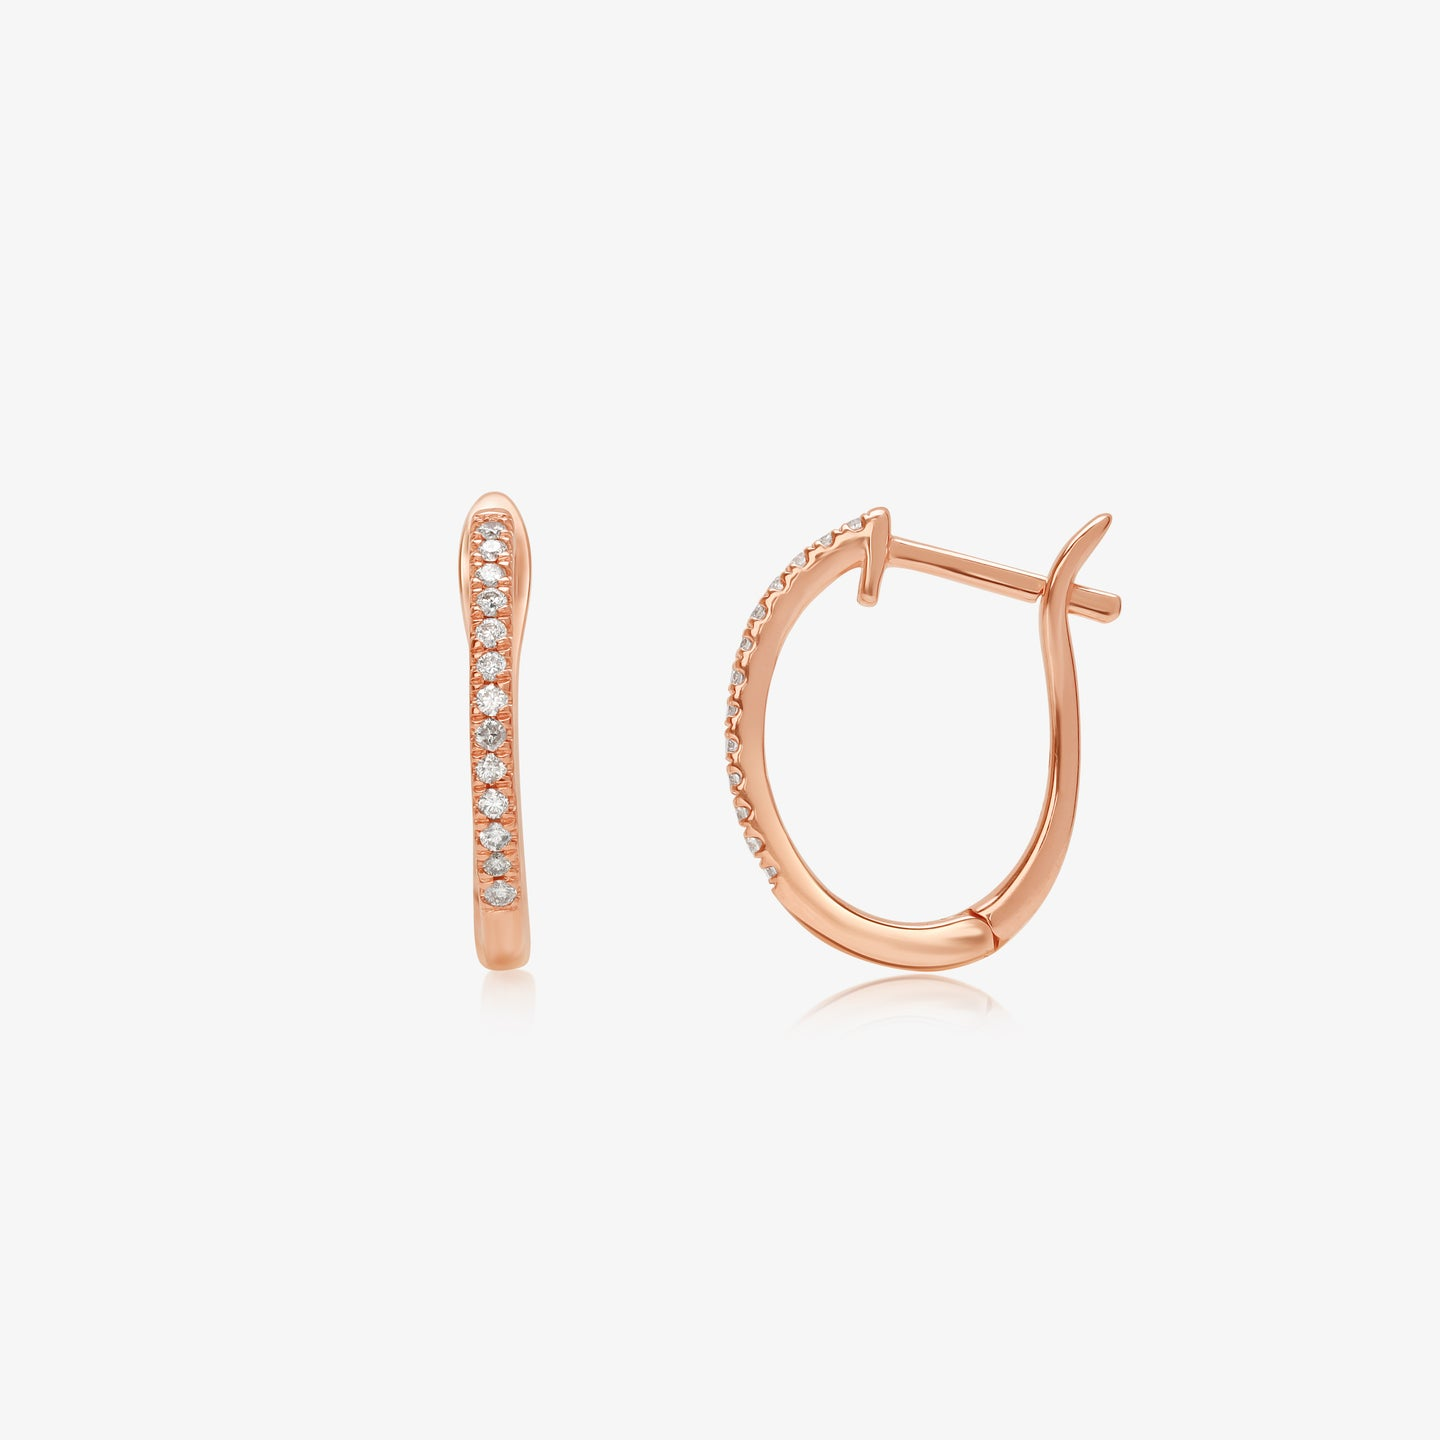 Classic Diamond 14k Gold Hoop Earrings - estellacollection